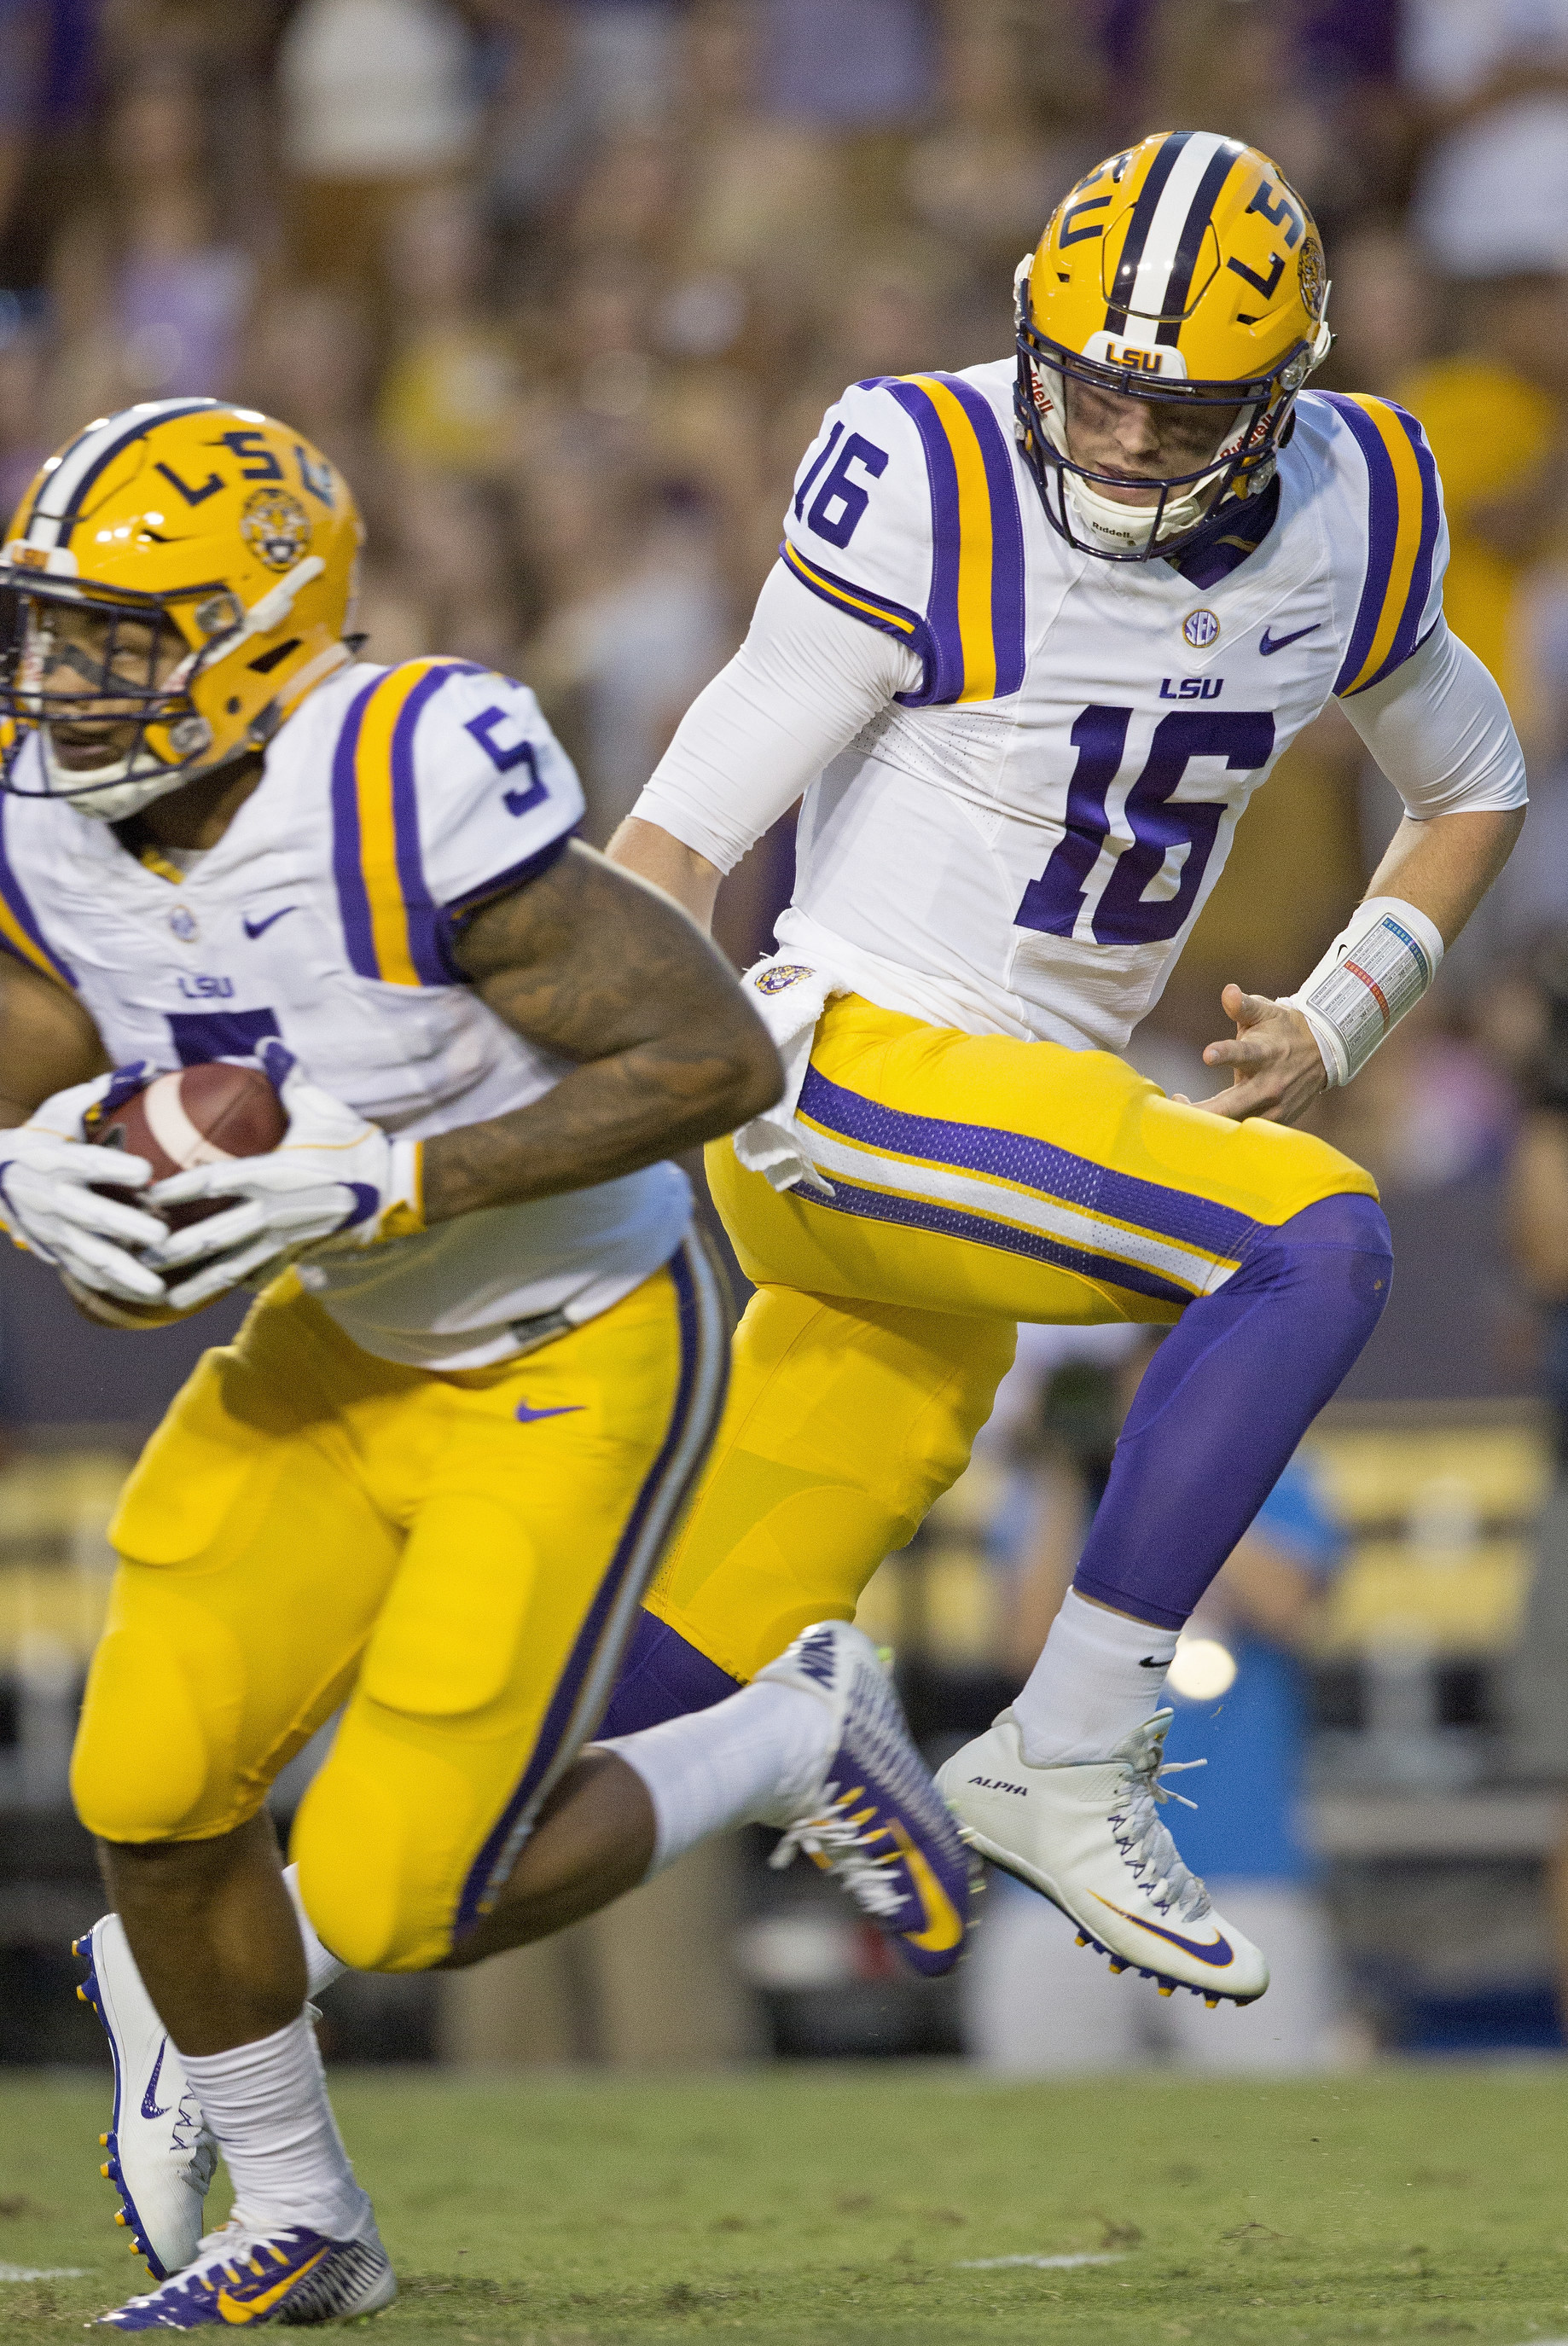 LSU quarterback Danny Etling (16) handoffs to LSU running back Derrius Guice (5) during the first half of an NCAA college football game against Missouri in Baton Rouge, La., Saturday, Oct. 1, 2016. (AP Photo/Max Becherer)